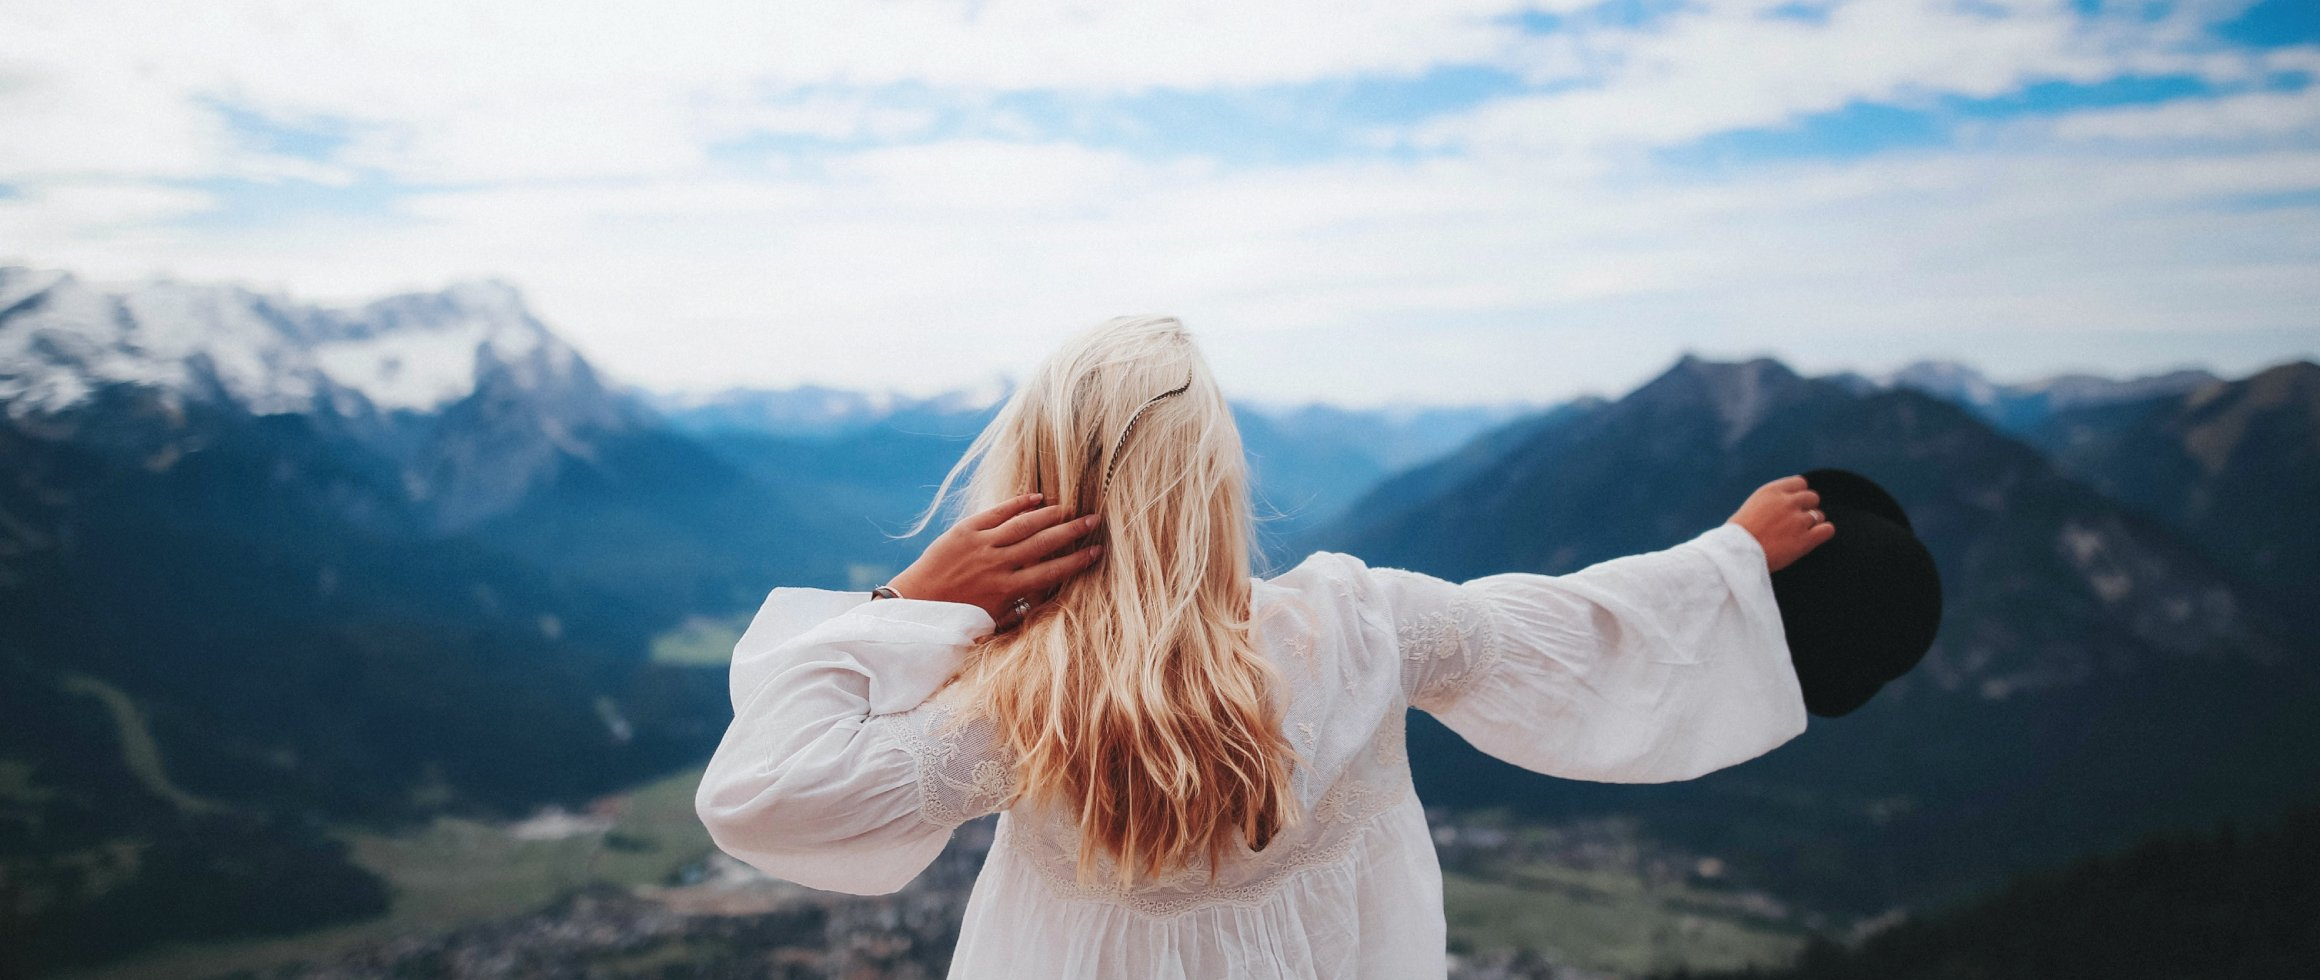 6 reasons you should embrace the unknown